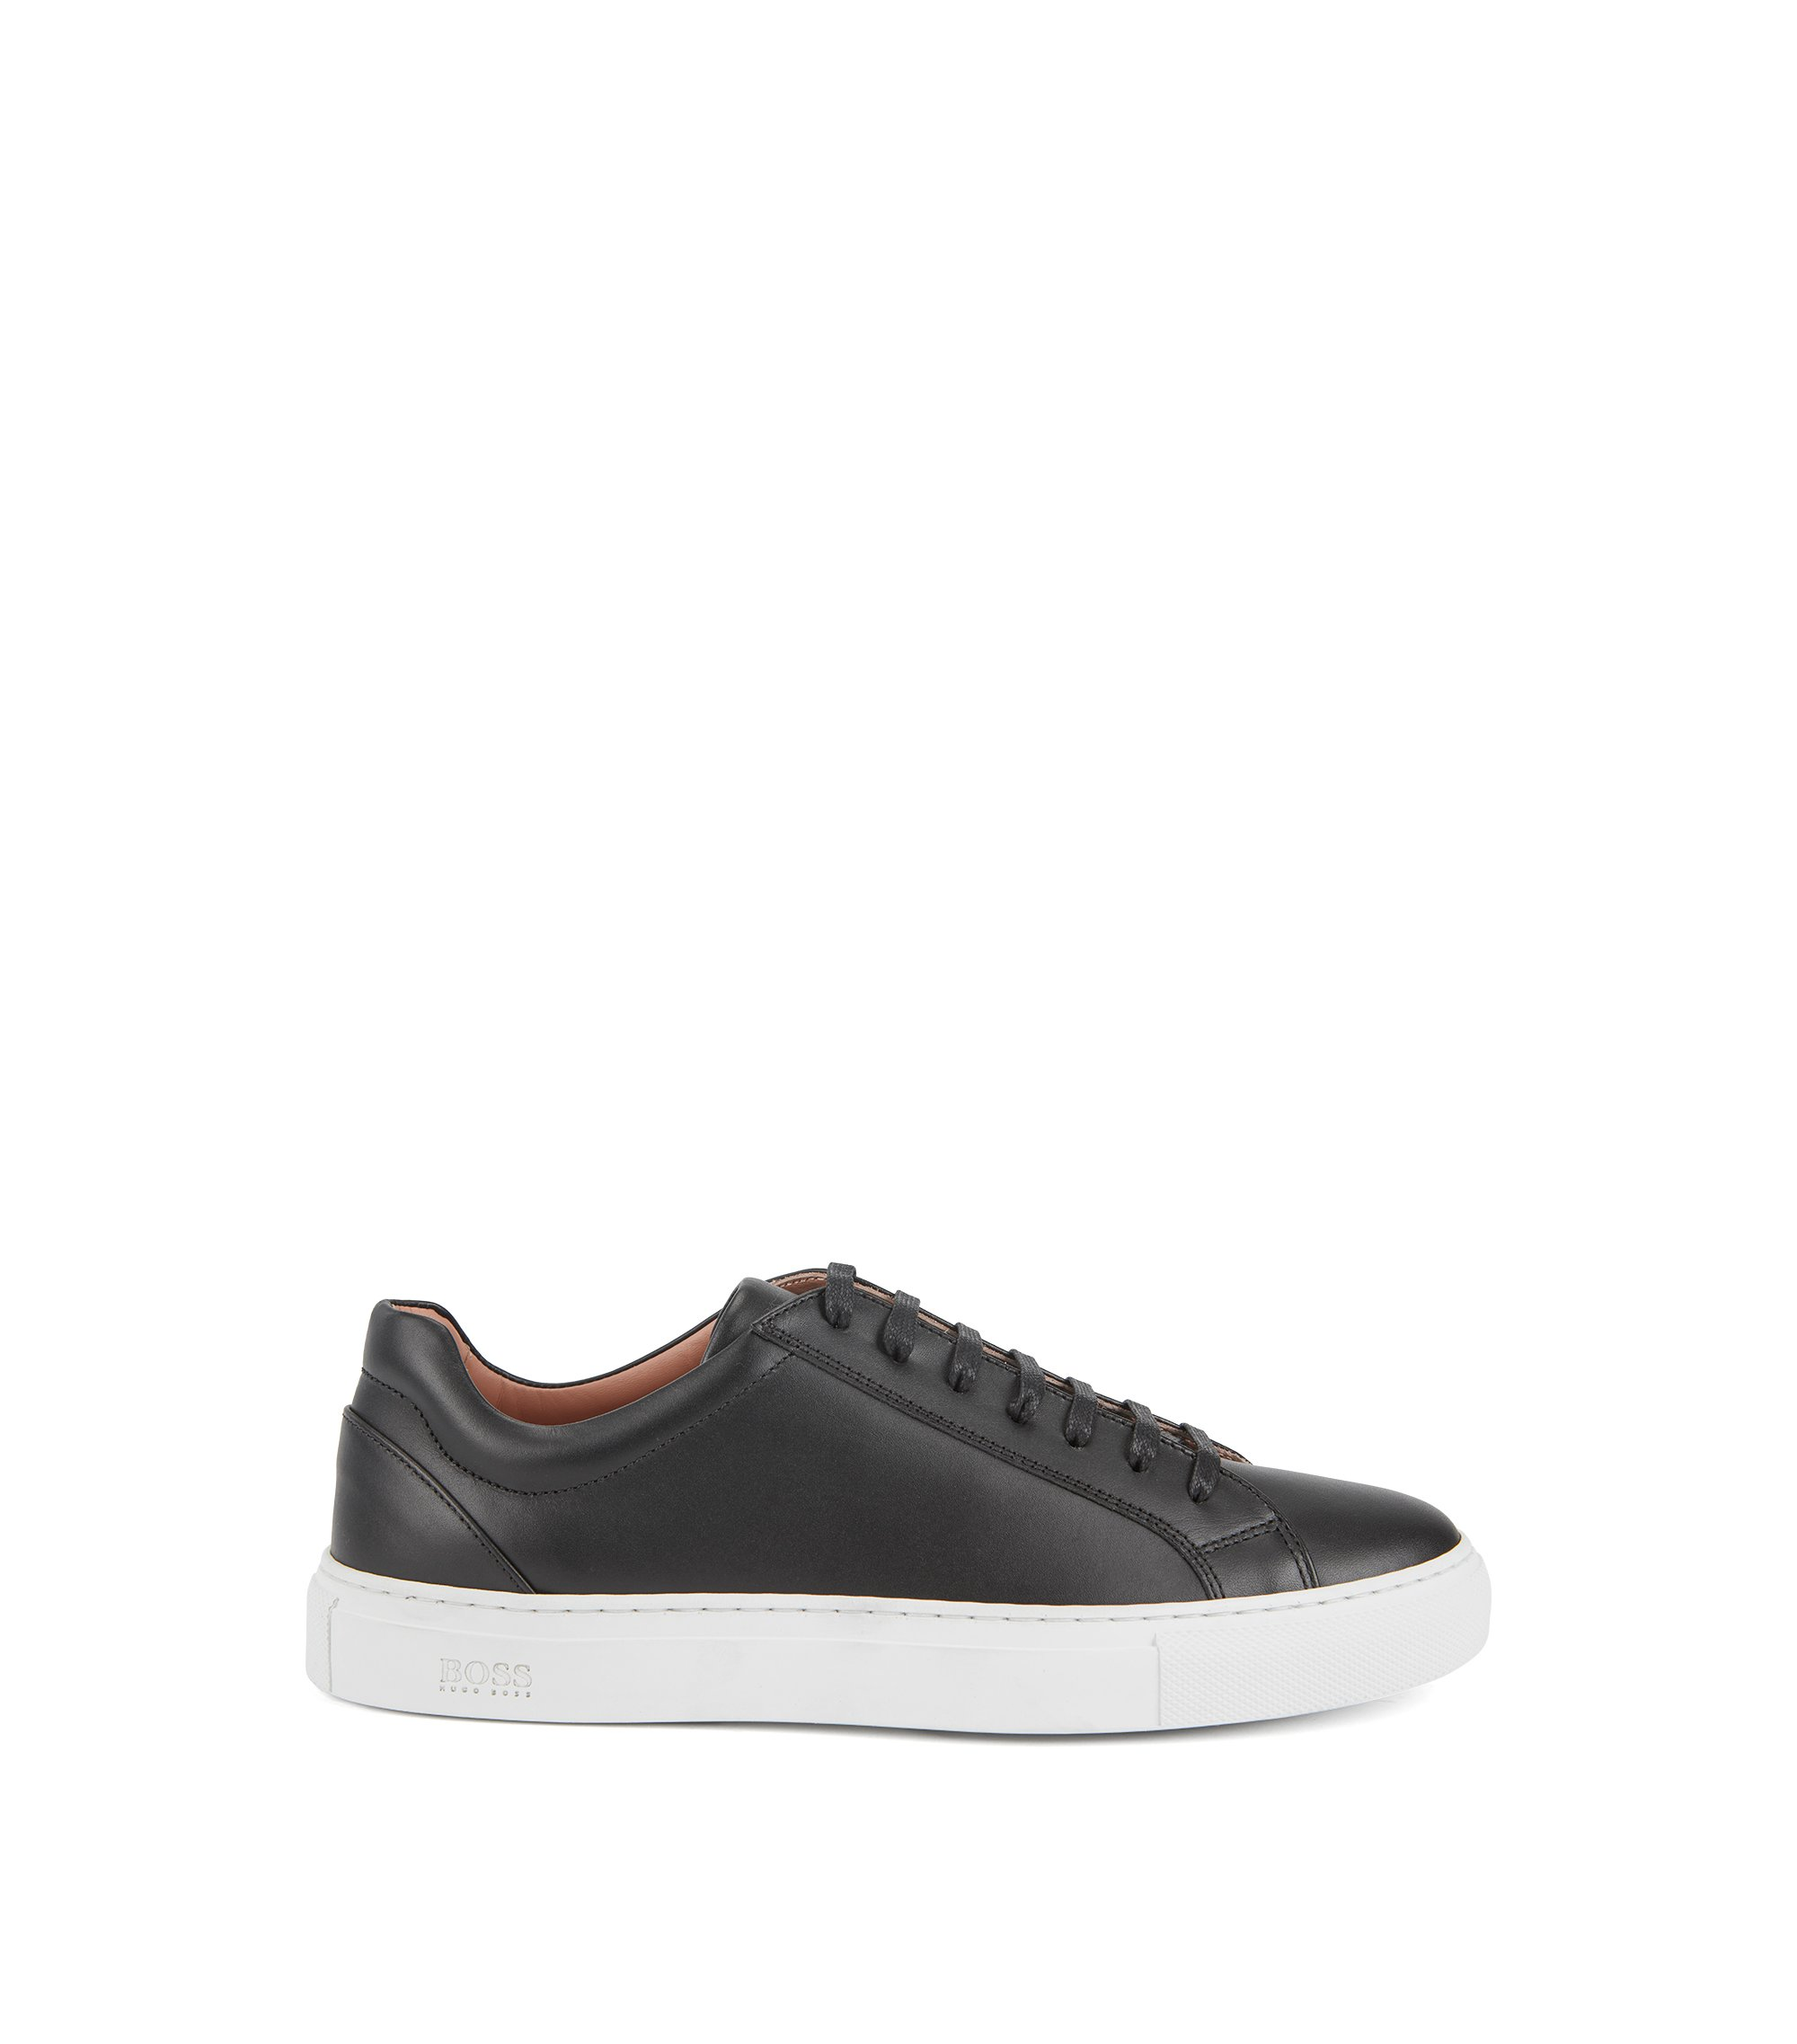 Sneakers low-top in pelle di vitello martellata realizzata in Italia, Nero